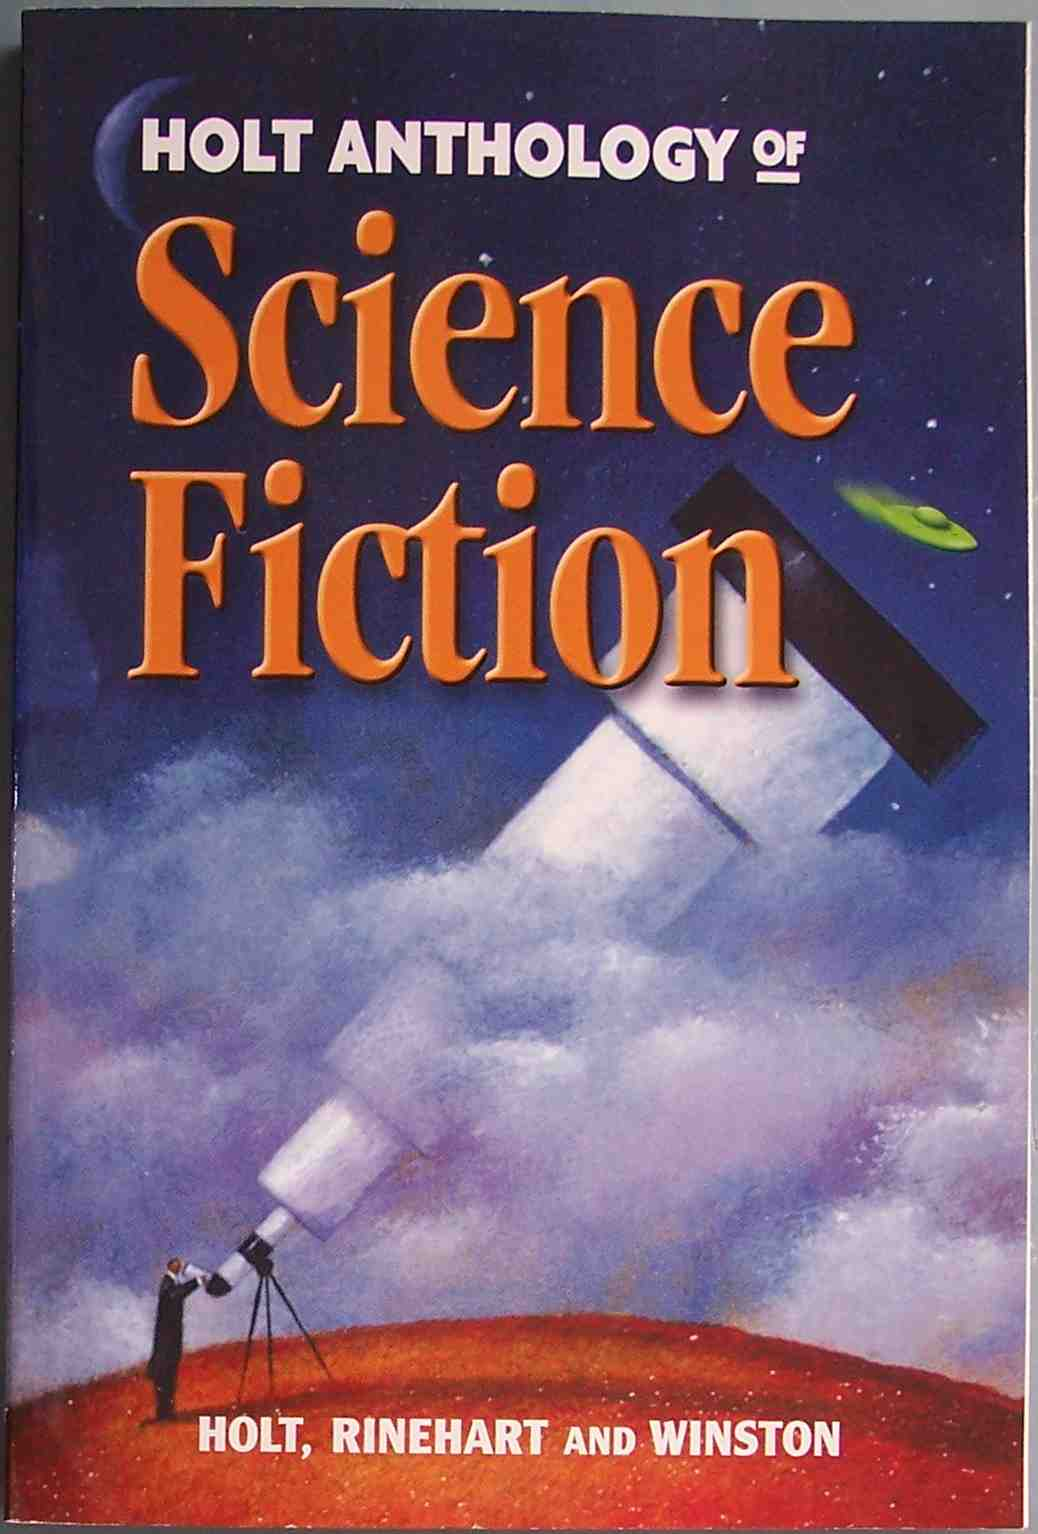 Holt Anthology Of Science Fiction Flickr